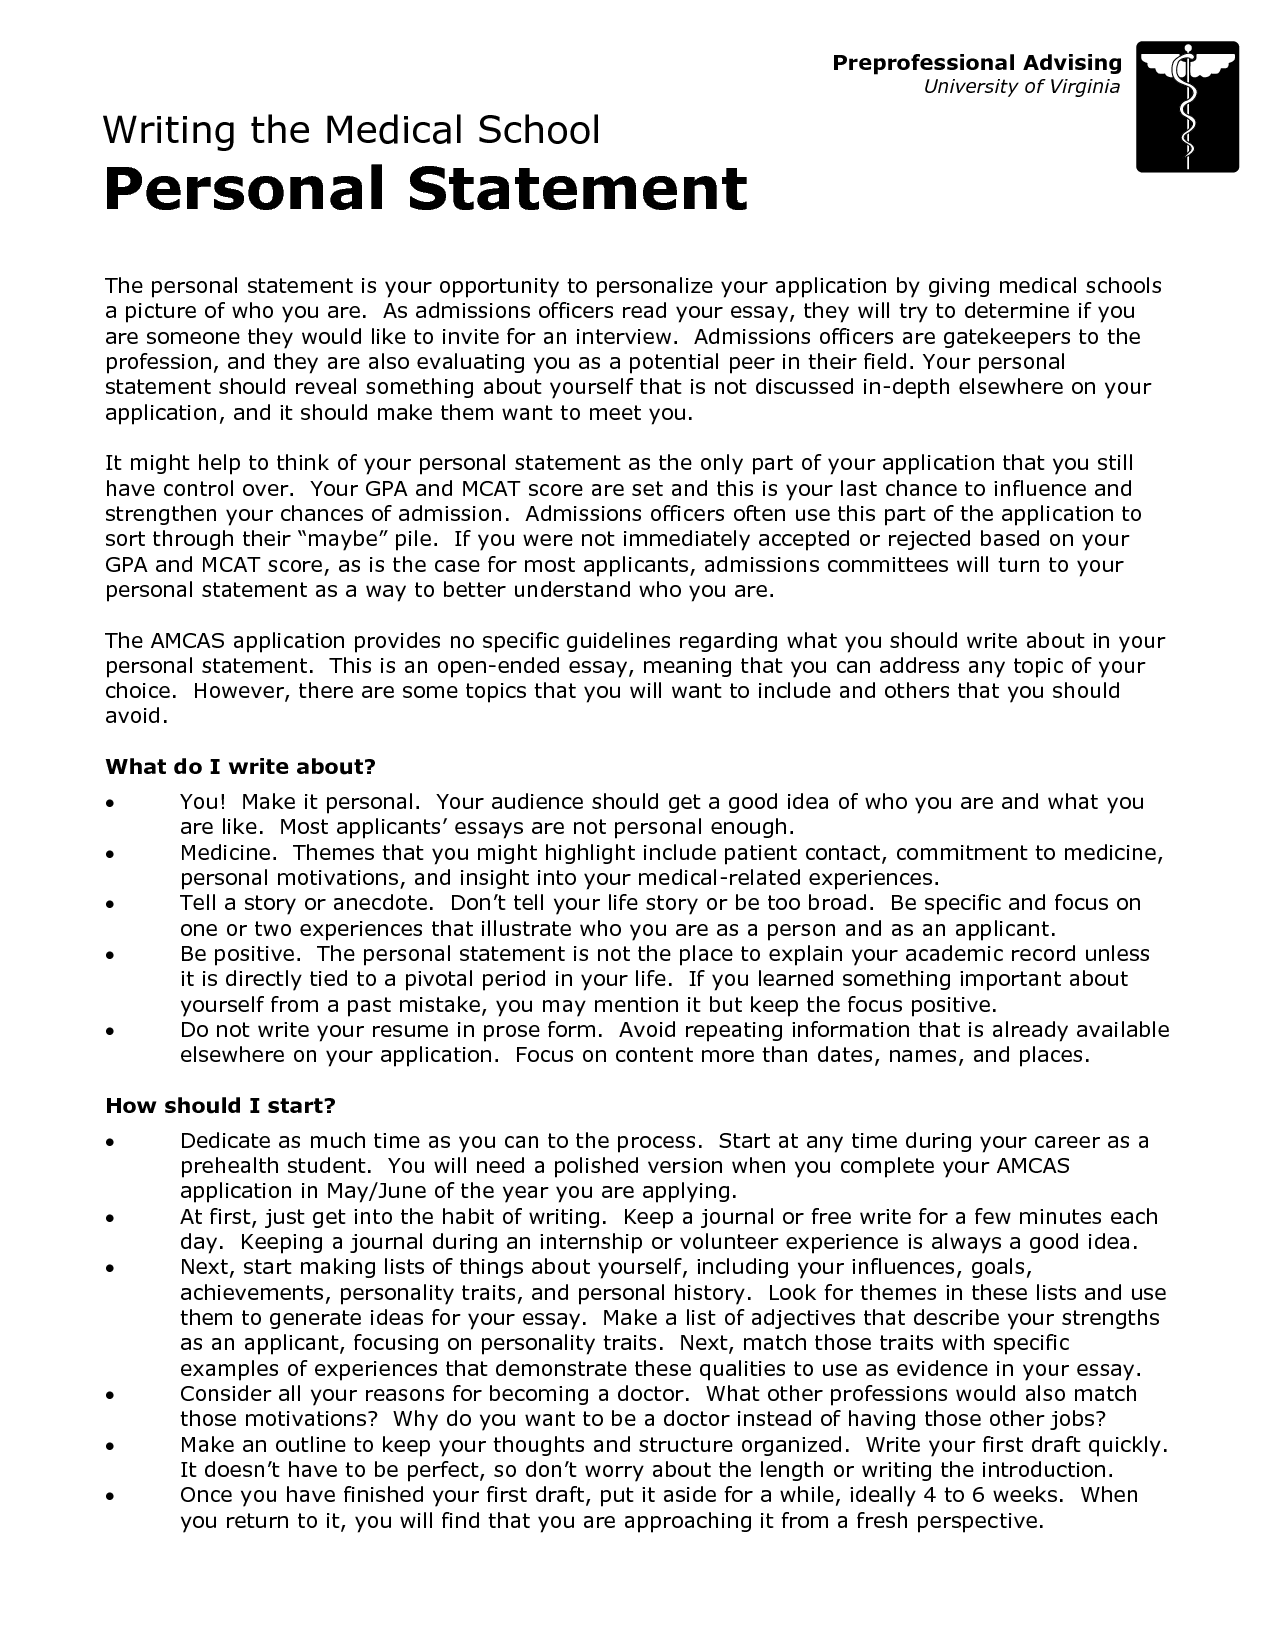 Medical school personal statement services